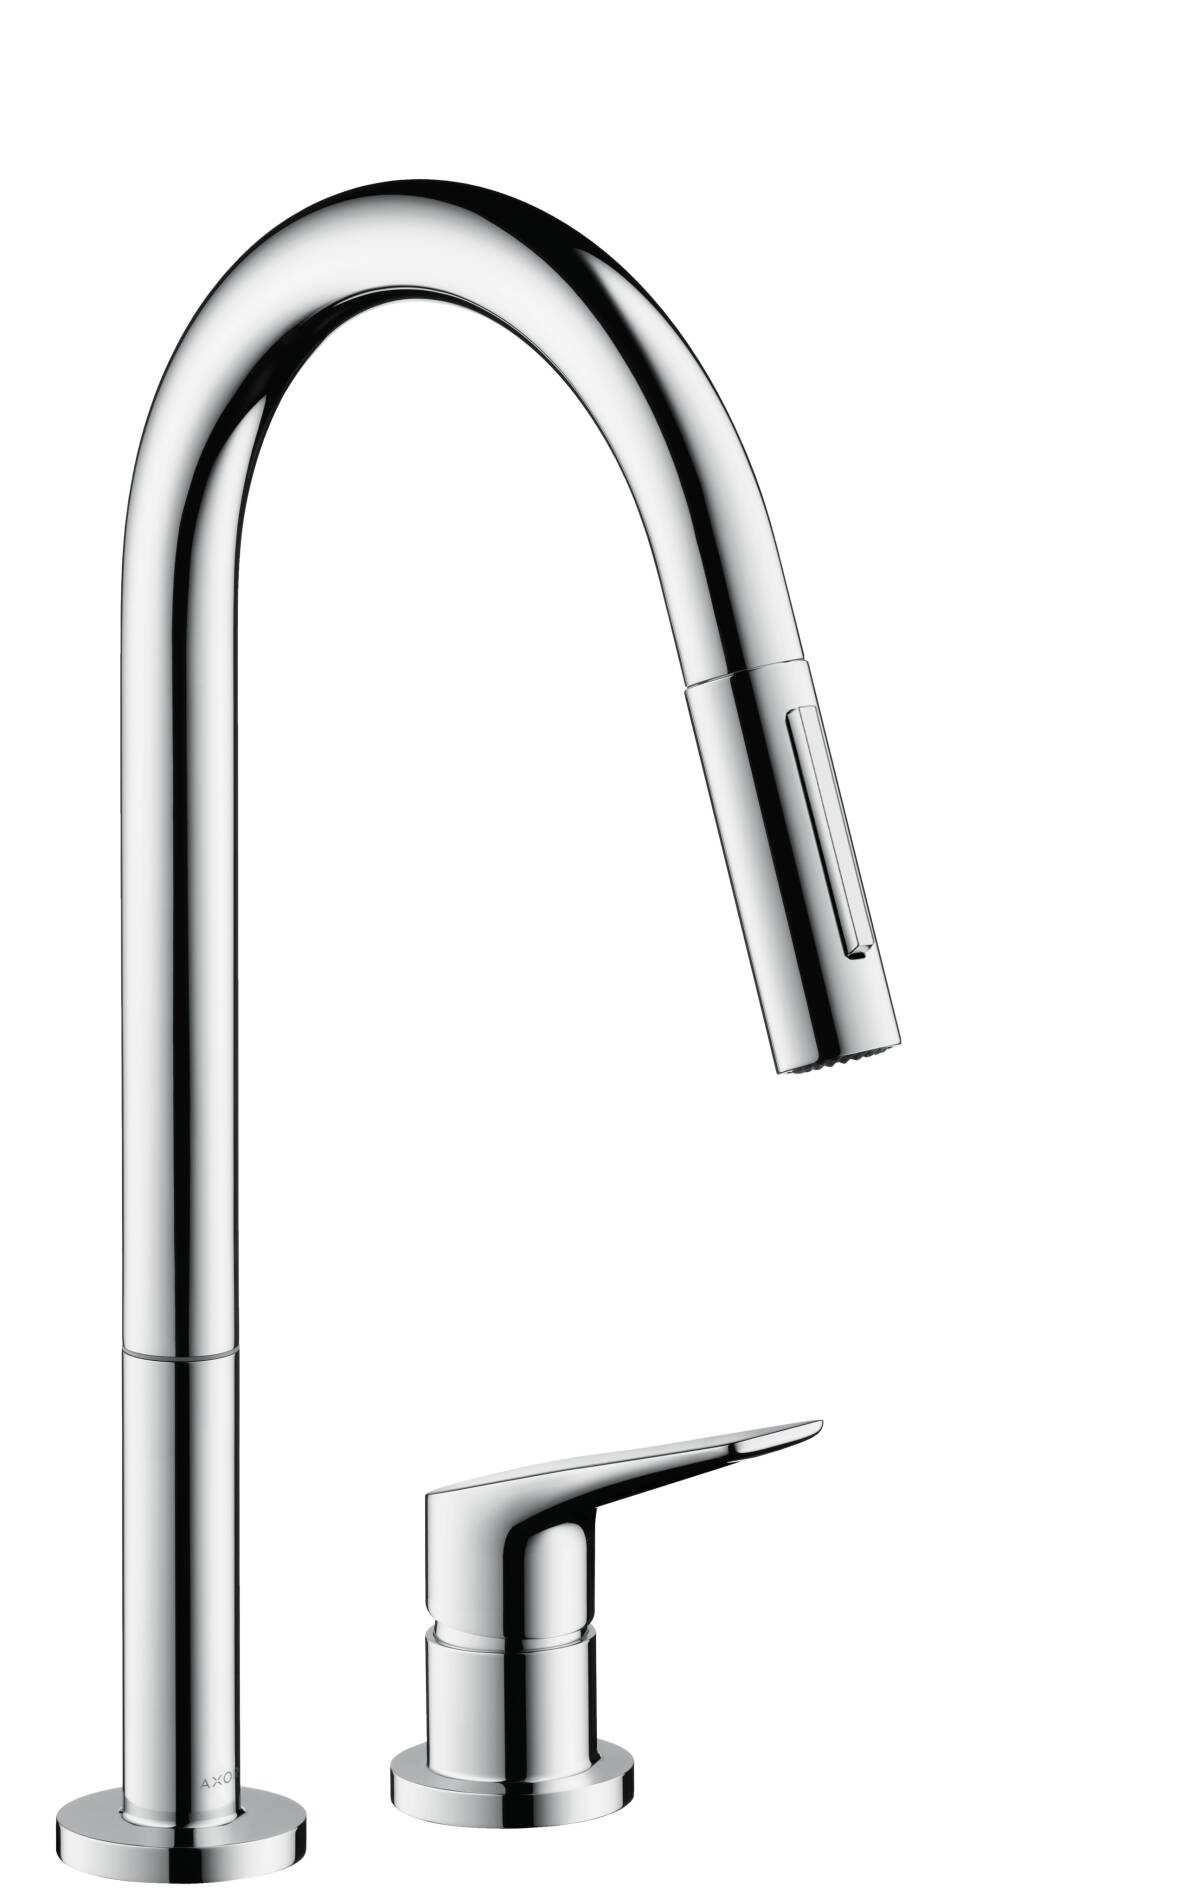 2-hole single lever kitchen mixer 220 with pull-out spray, Chrome, 34822000